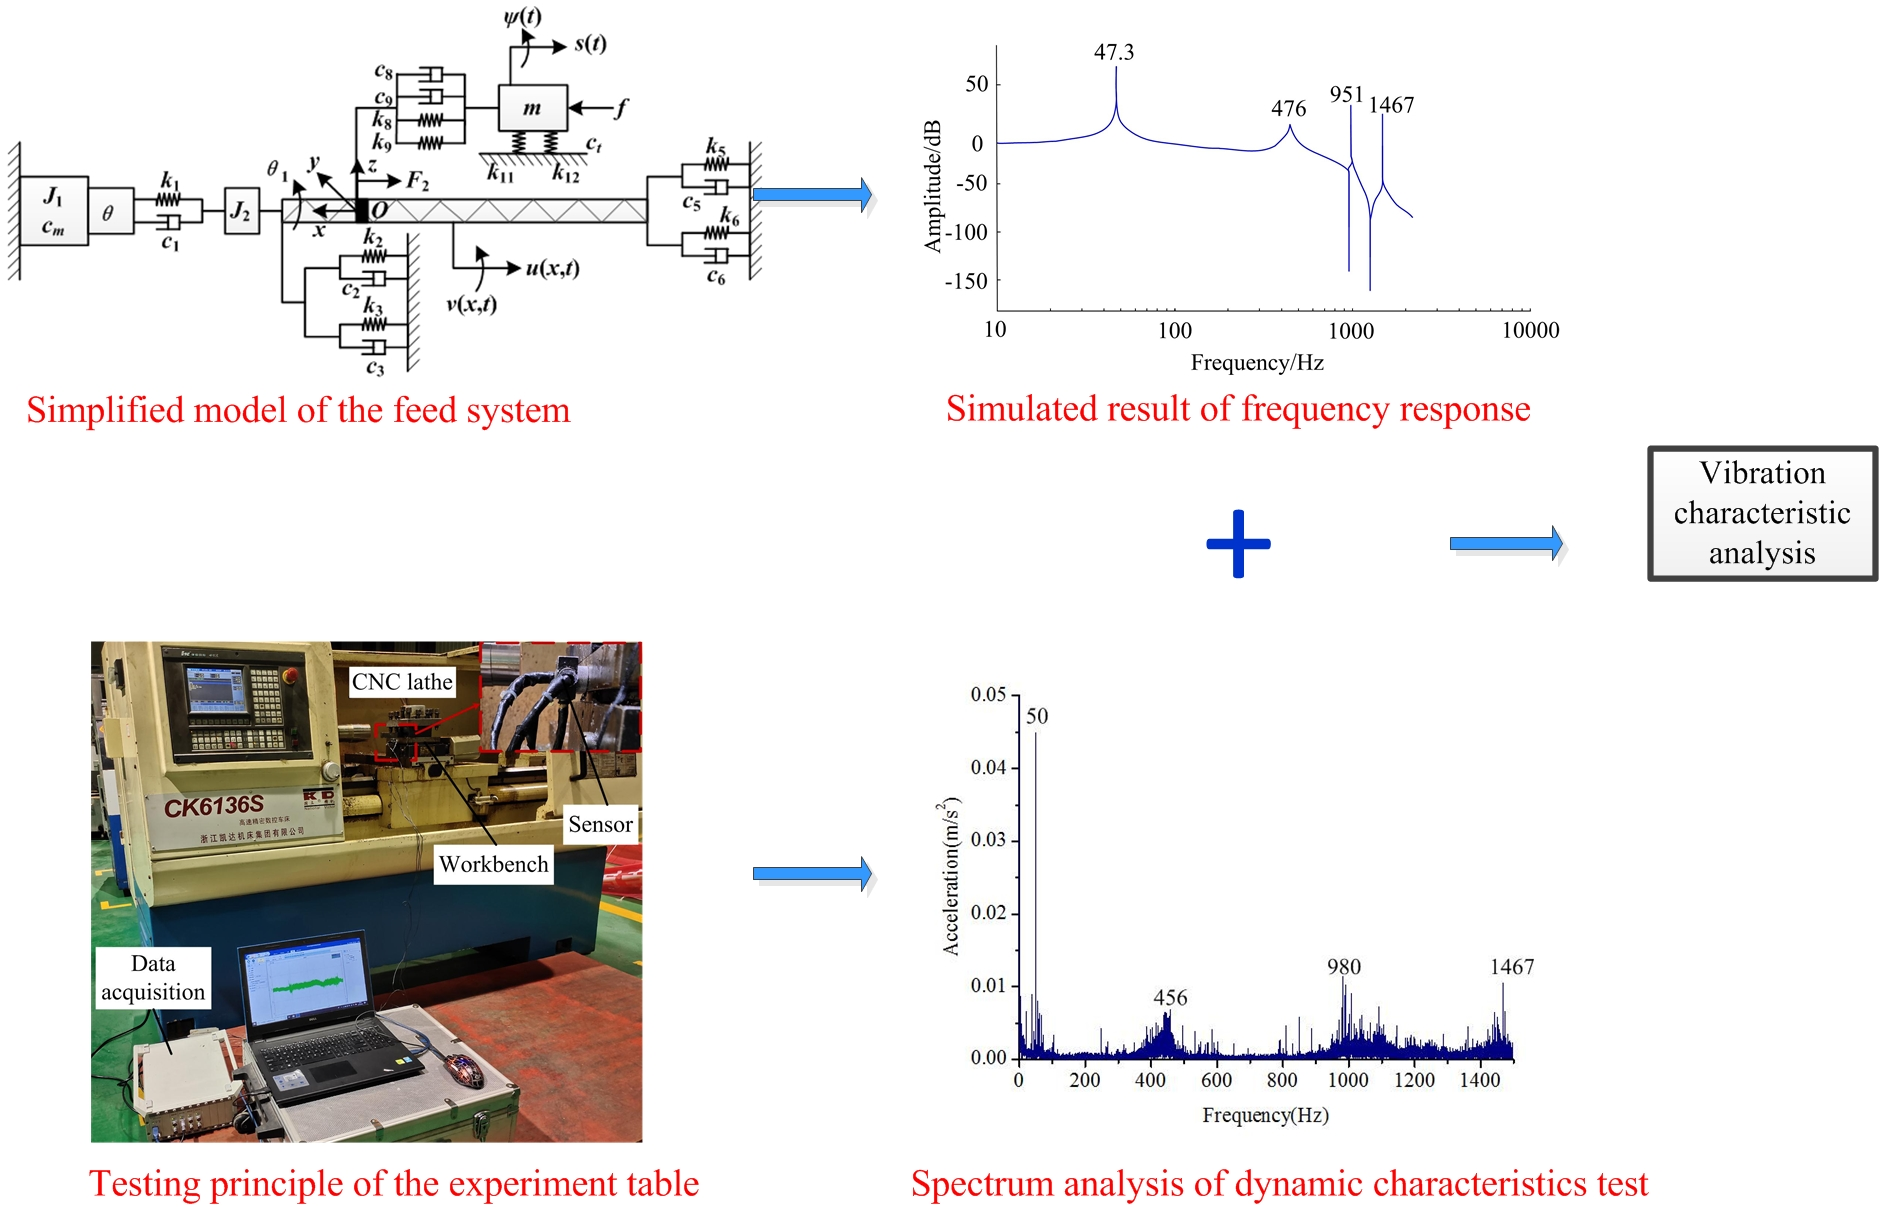 Quantitative analysis for effects of structural stiffness on vibration characteristics of machine tool feed system